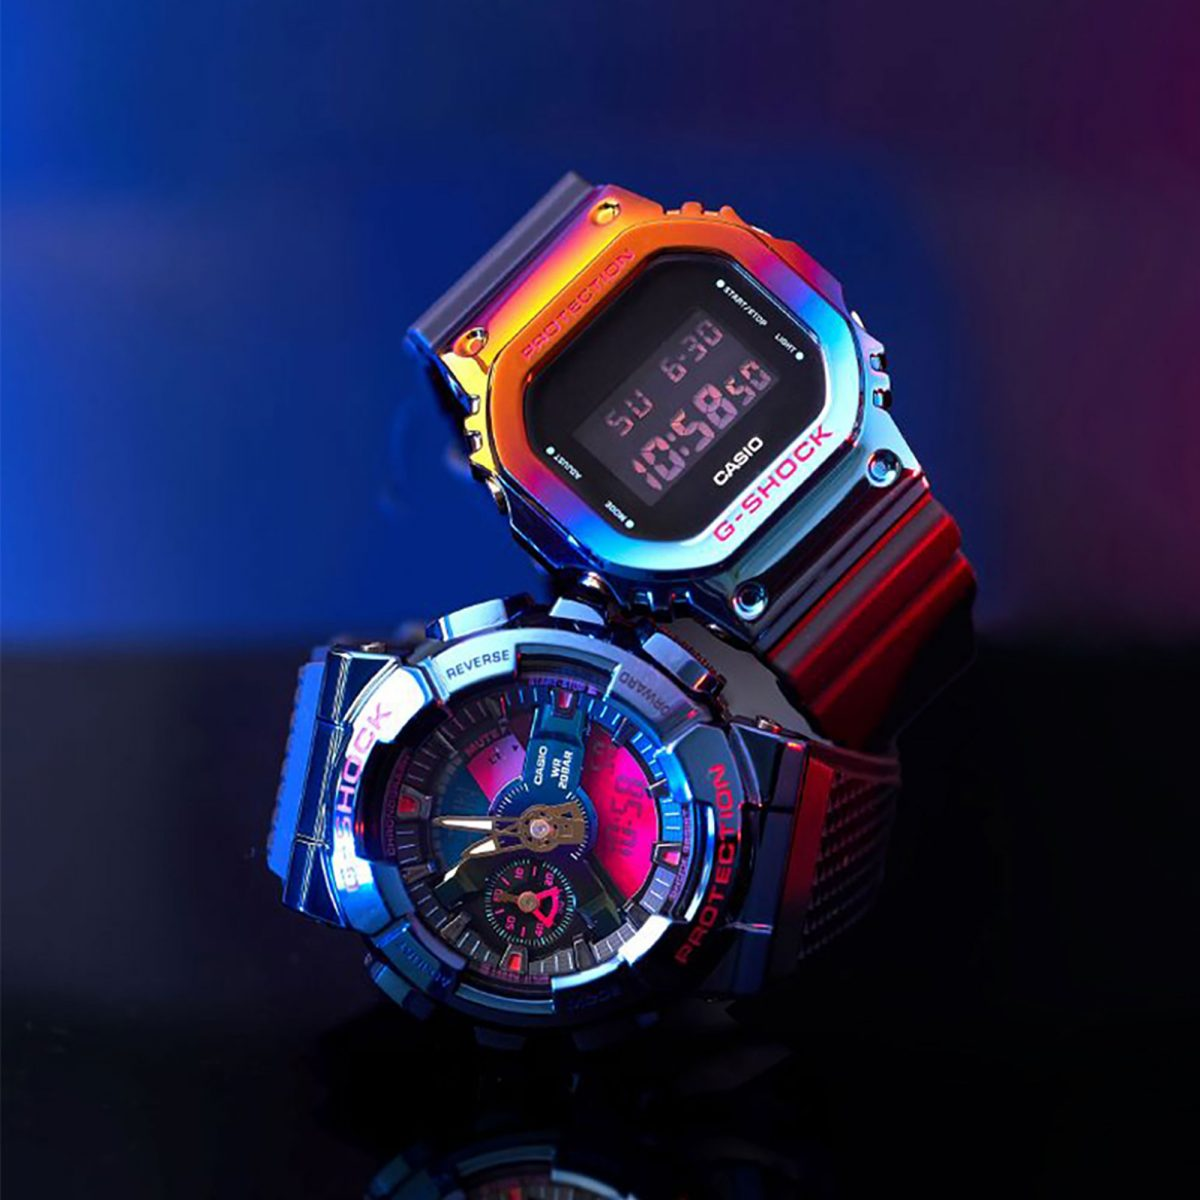 Casio unveils the New Night Light Series with 2 Metal G-SHOCK Base Models